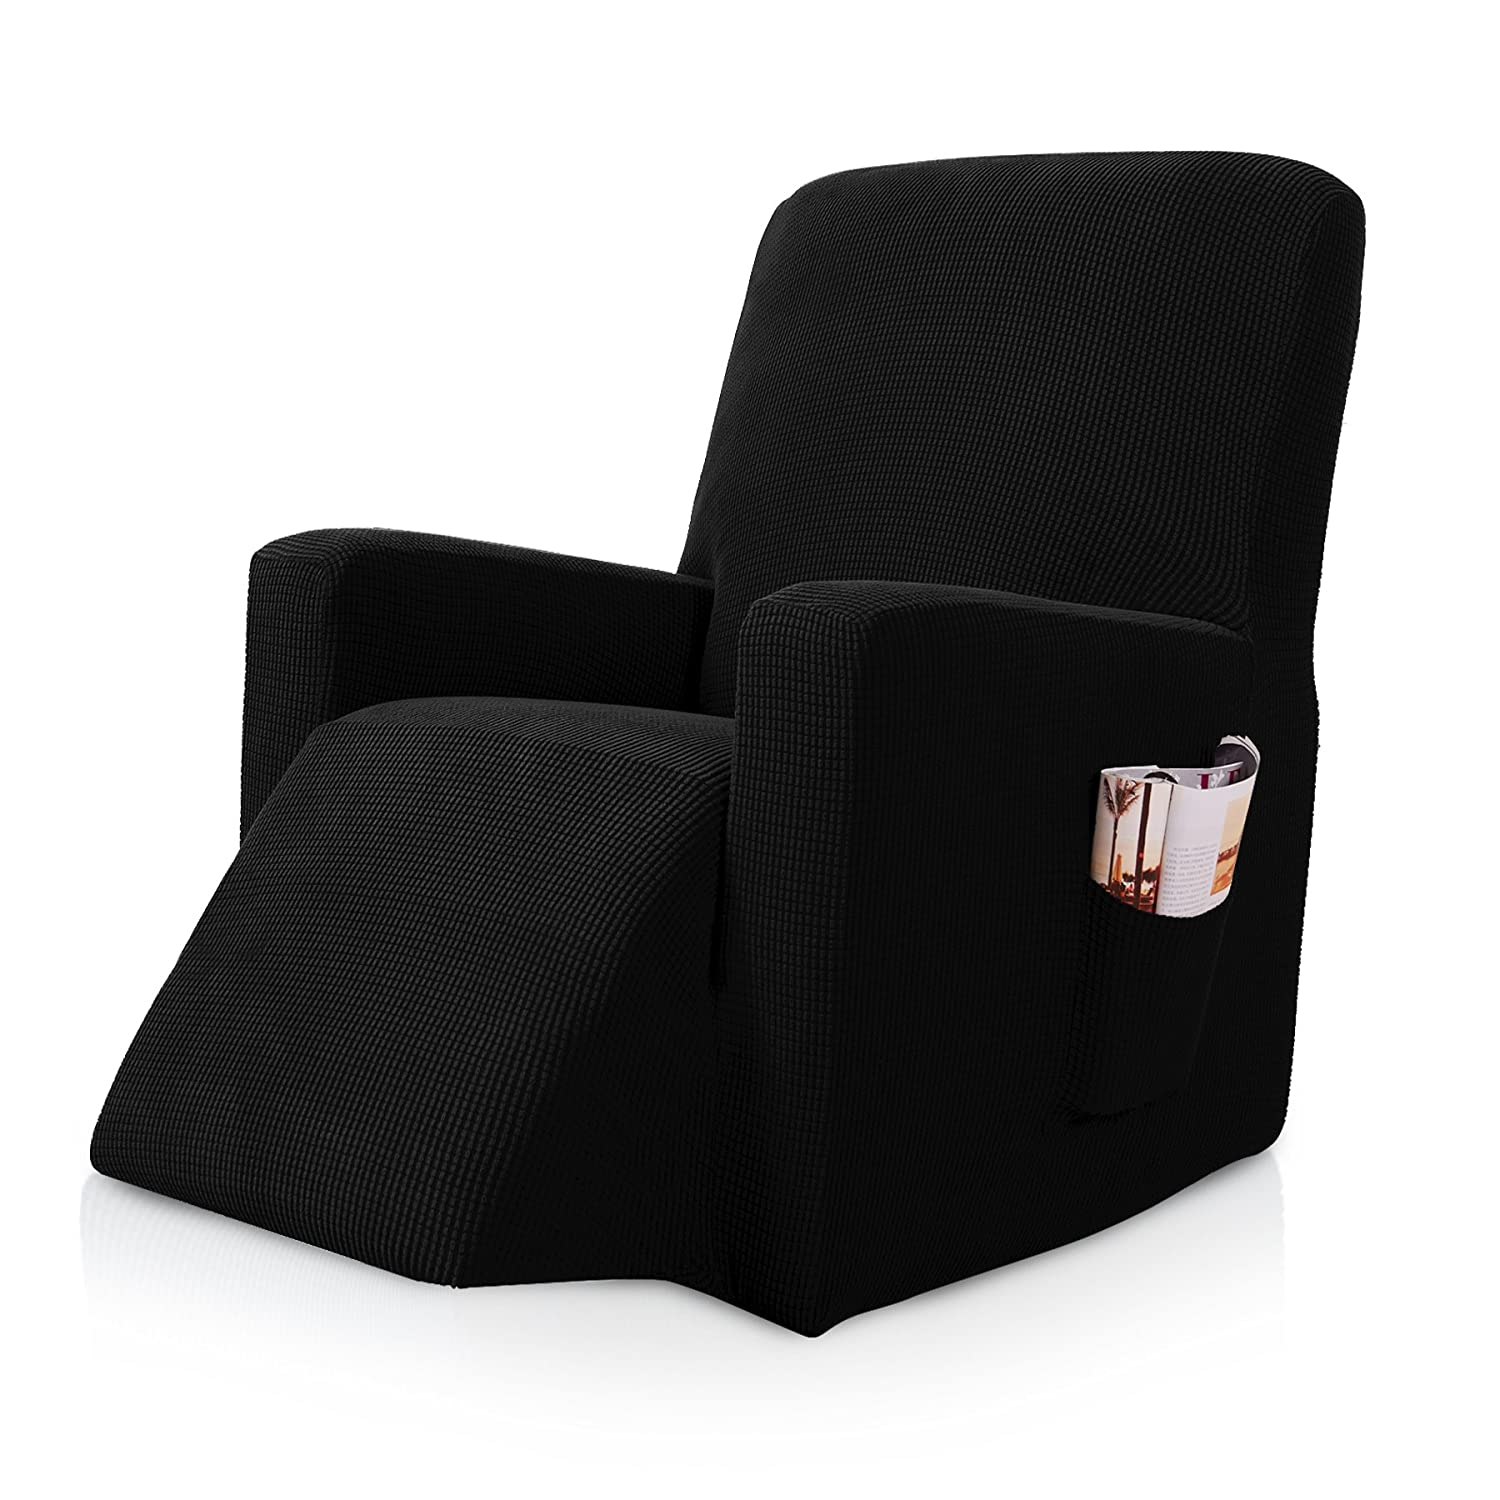 Brilliant Subrtex Stretch Chair Slipcover Furniture Protector Lazy Boy Covers For Leather And Fabric Sofa With Side Pocket Recliner Black Cjindustries Chair Design For Home Cjindustriesco